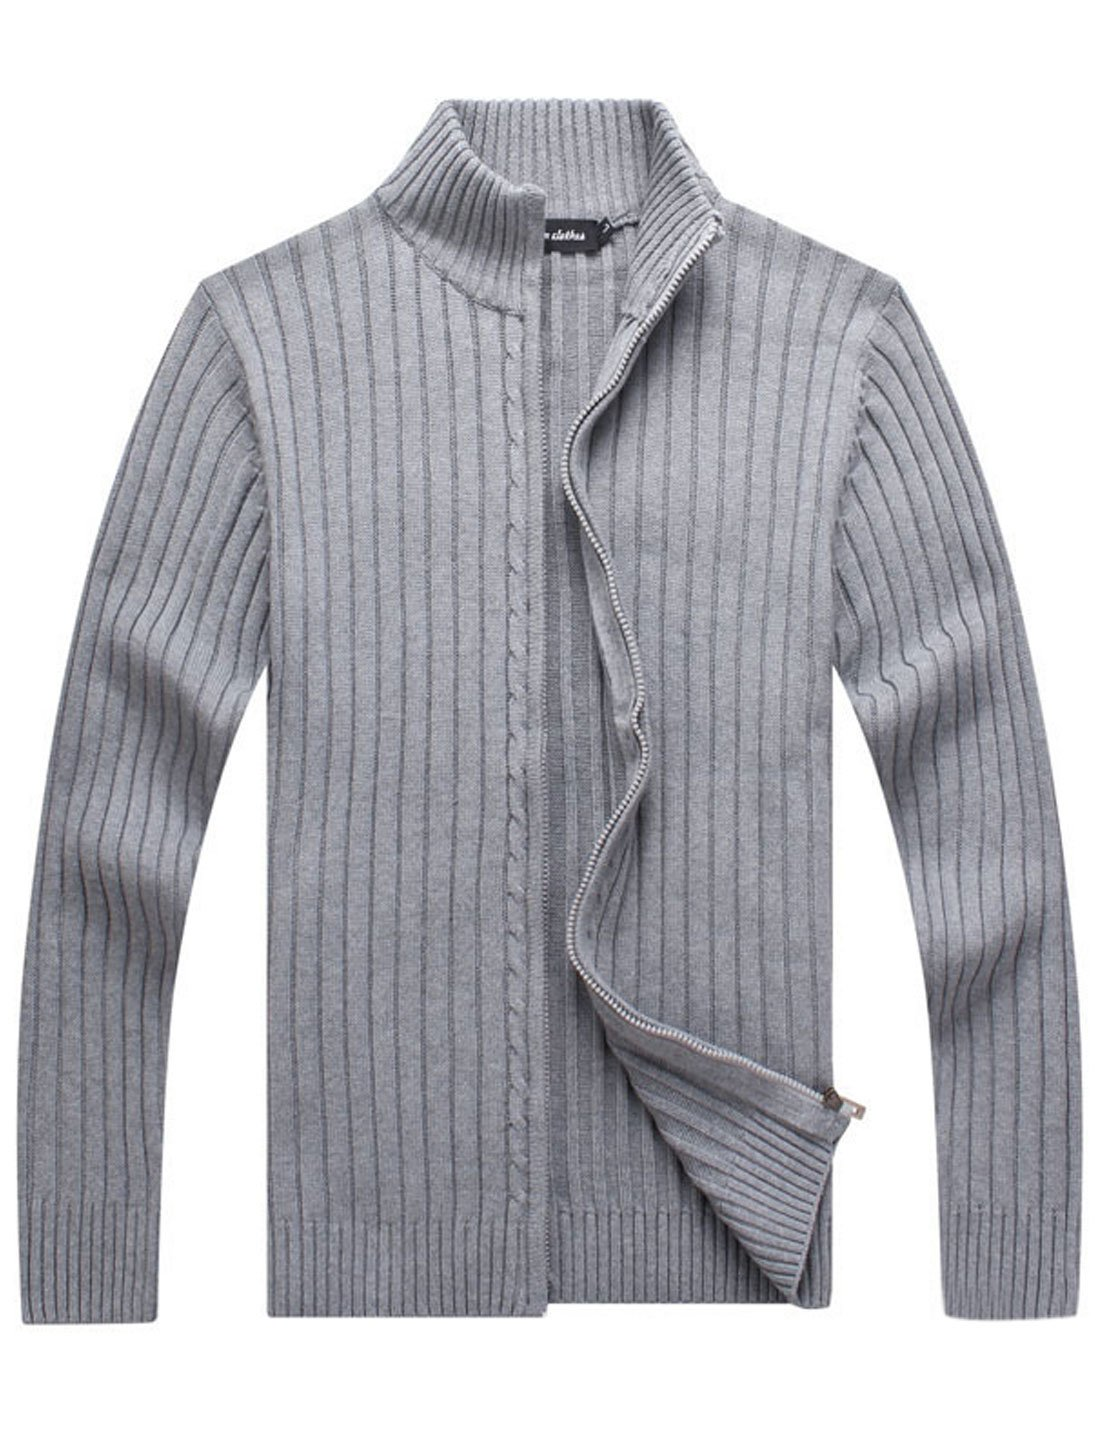 Yeokou Men's Casual Autumn Stand Collar Full Zip Up Knitted Cardigan Sweater